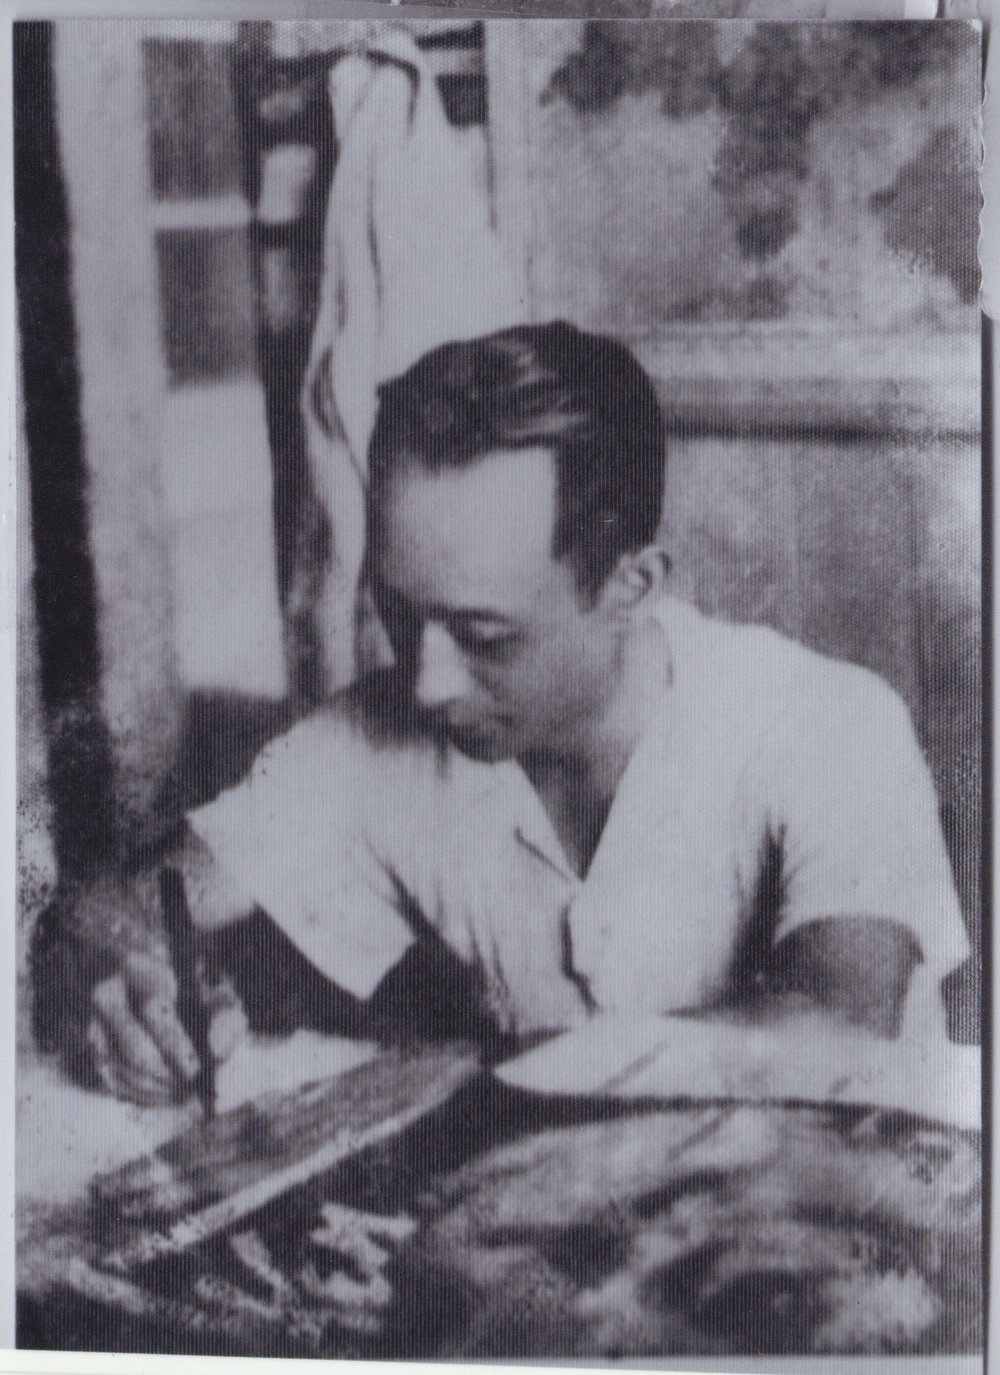 YY Wong drawing. Date unknown. Image courtesy Alexander Jay.